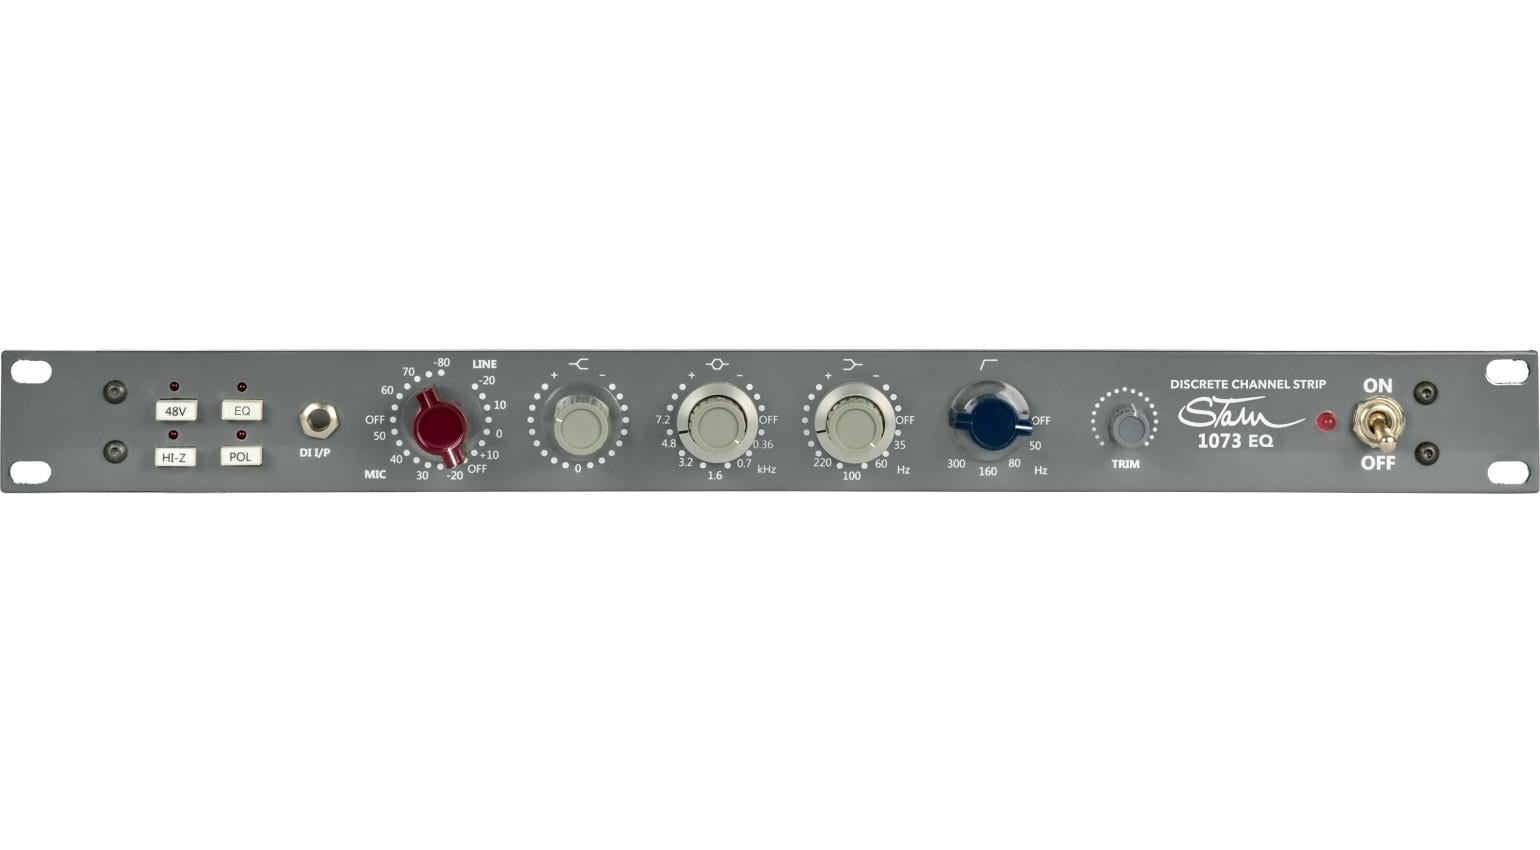 Stam Audio 1073 EQ: a faithful clone that doesn't break the bank?